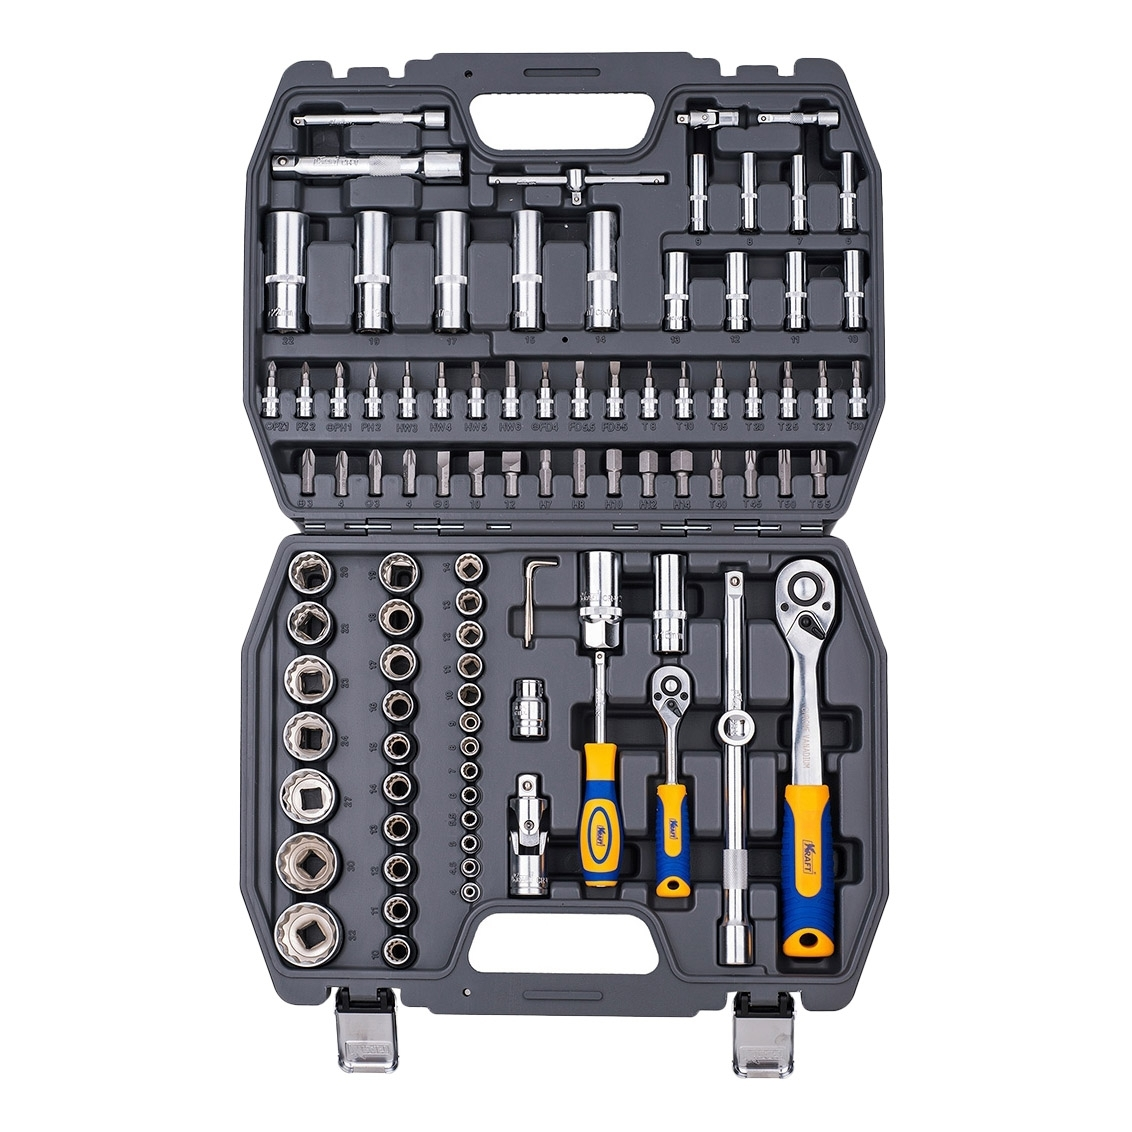 Hand tool set KRAFT CT 700682 94 deko tz53 household tool set auto repair mixed tool combination package hand tool kit with plastic toolbox storage case 53 pcs